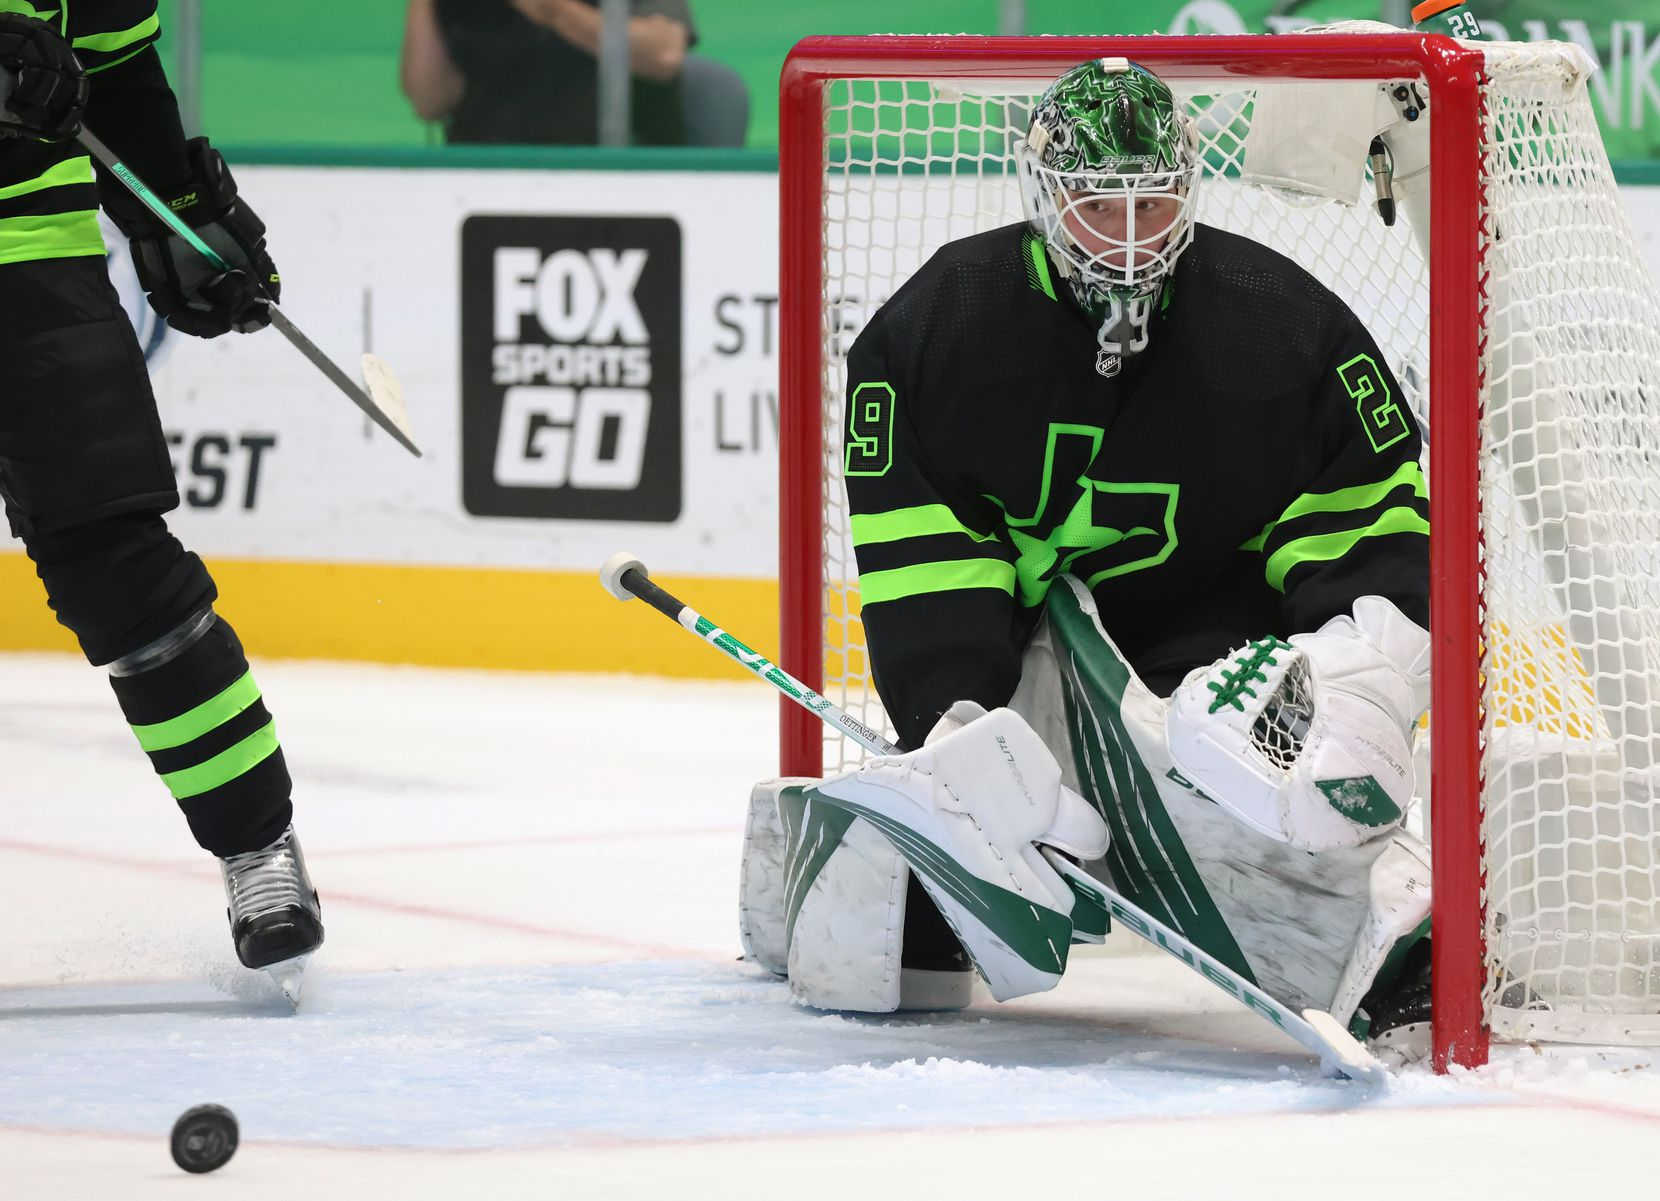 Dallas Stars goaltender Jake Oettinger (29) watches as the puck rolls in a game against the Detroit Red Wings during the second period of play at American Airlines Center on Thursday, January 28, 2021in Dallas. (Vernon Bryant/The Dallas Morning News)